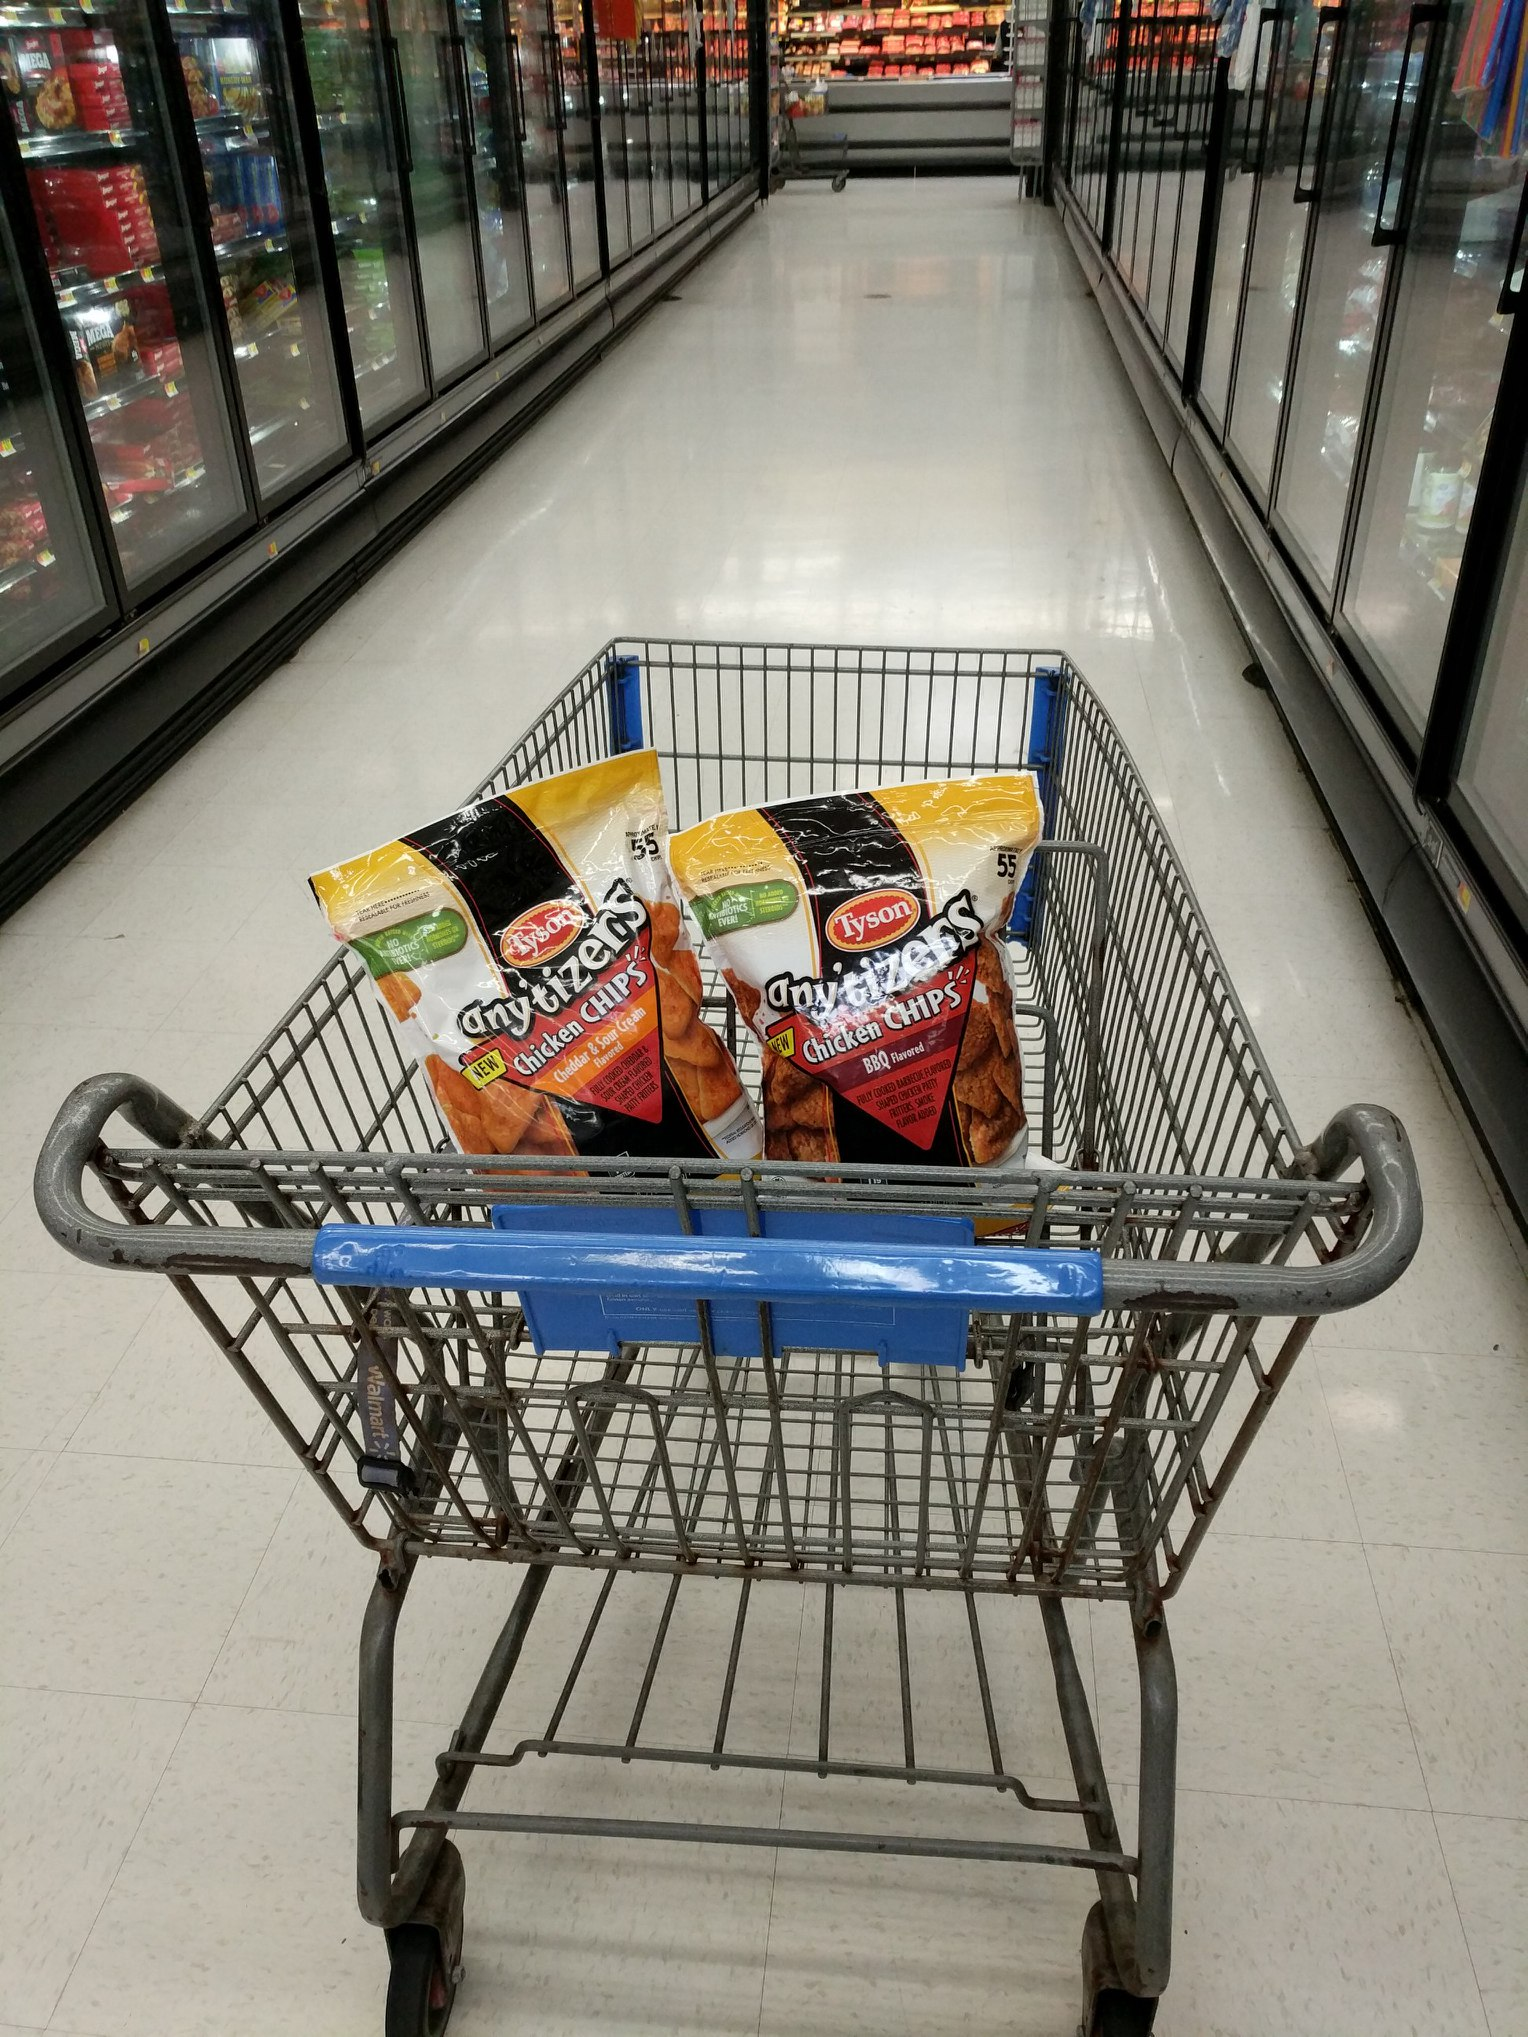 Walmart Basket with Tysons Anytizers Chicken Chips